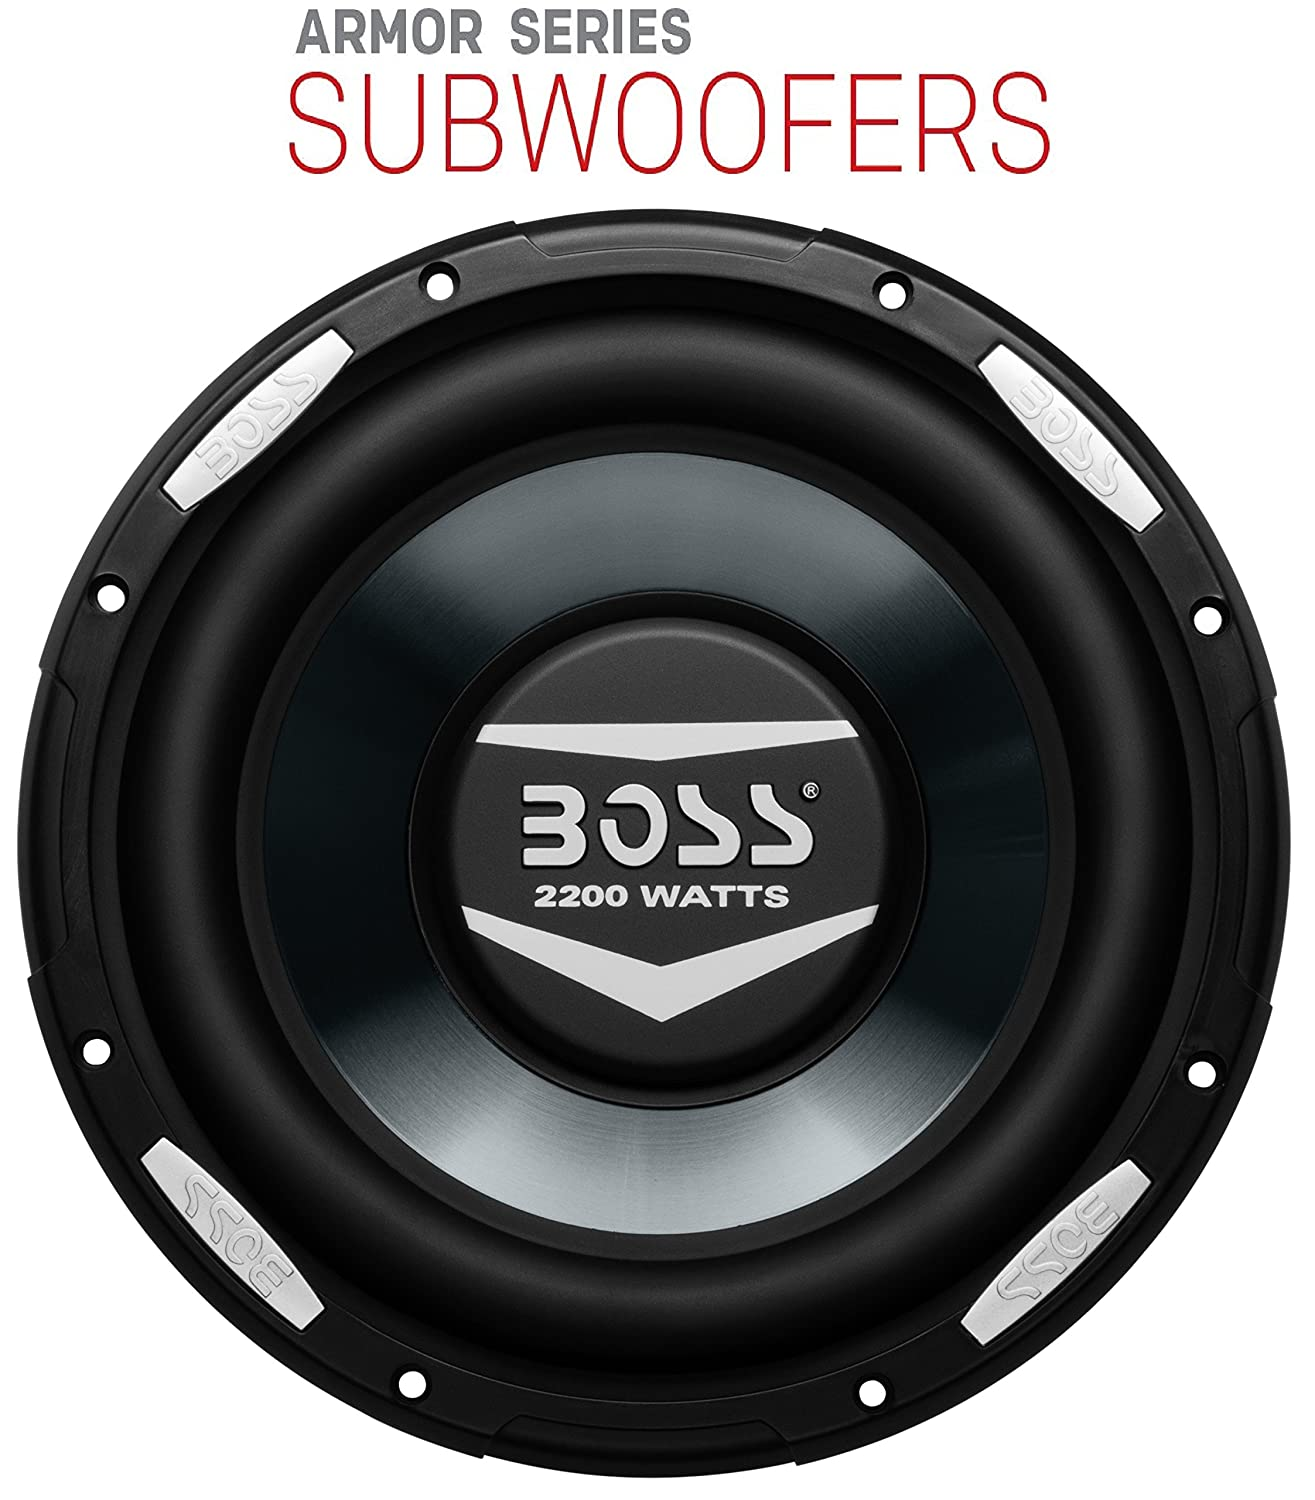 Amazon.com: BOSS Audio AR10D 2000 Watt, 10 Inch, Dual 4 Ohm Voice Coil Car  Subwoofer: Car Electronics